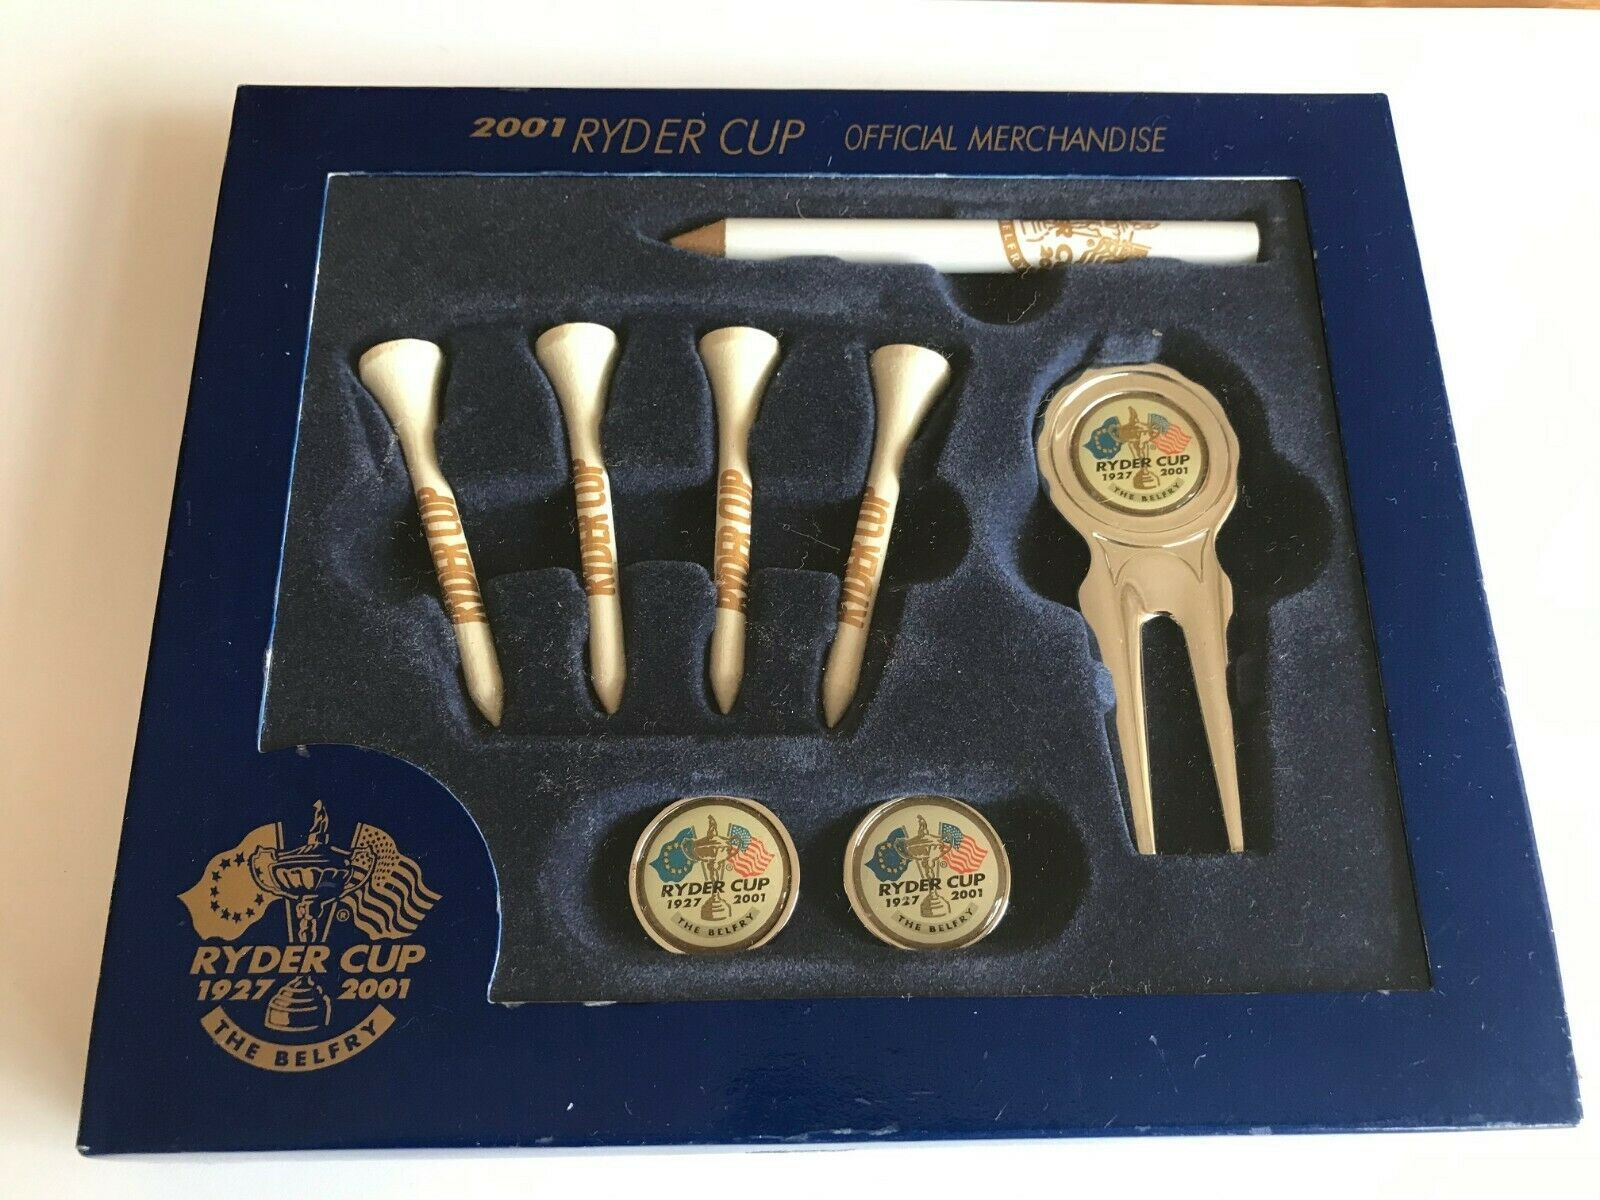 Primary image for RYDER CUP 2001 GOLF GIFT SET. DIVOT TOOL, MARKERS, PENCIL AND TEES